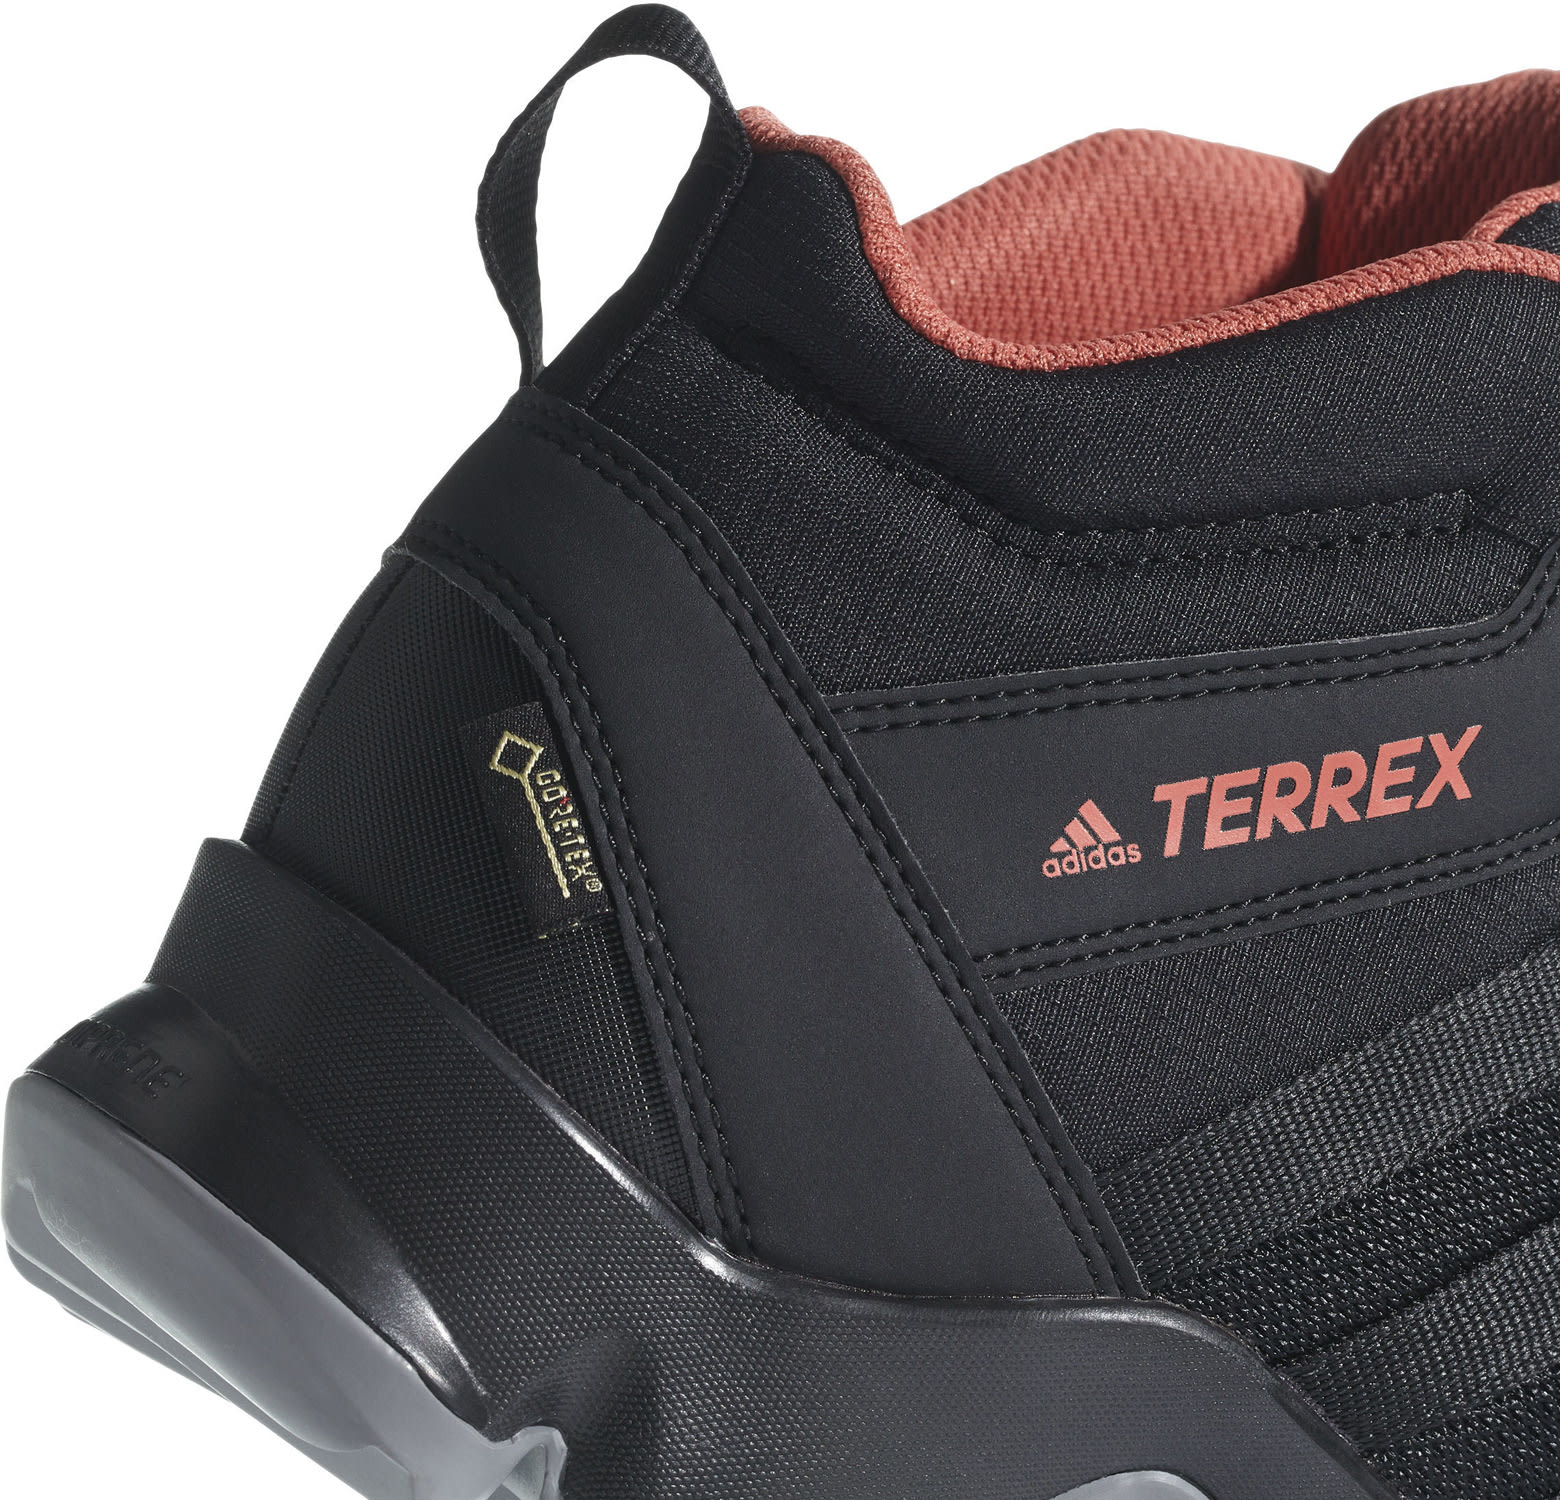 best loved 8ed97 a3c5e Adidas Terrex AX2R Mid GTX Hiking Boots - thumbnail 7